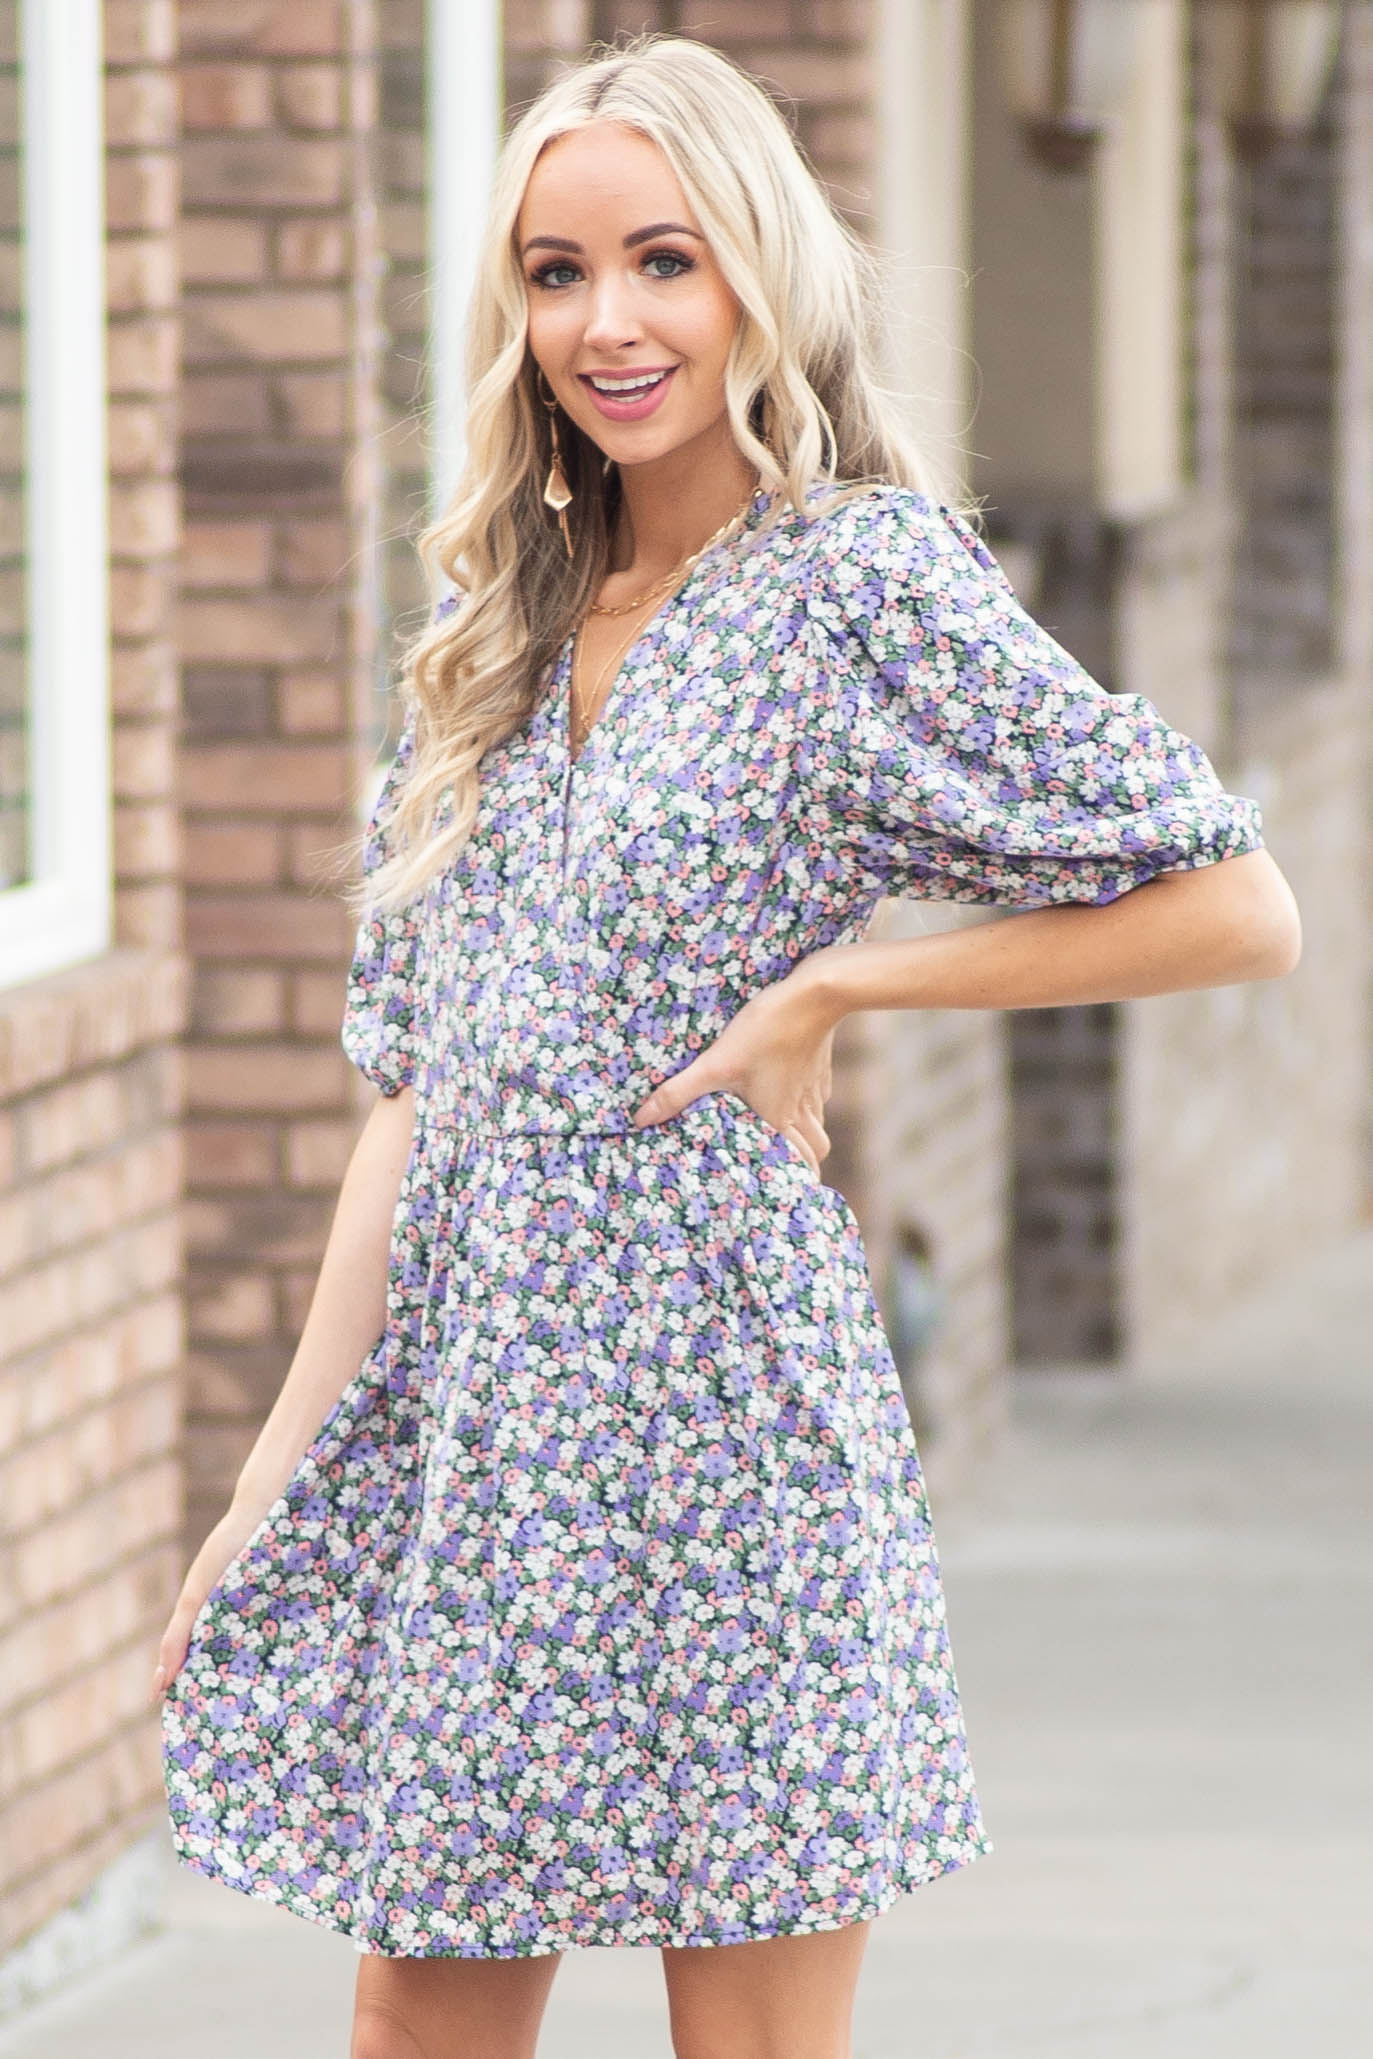 Lavender Floral Print Surplice Dress with Short Sleeves